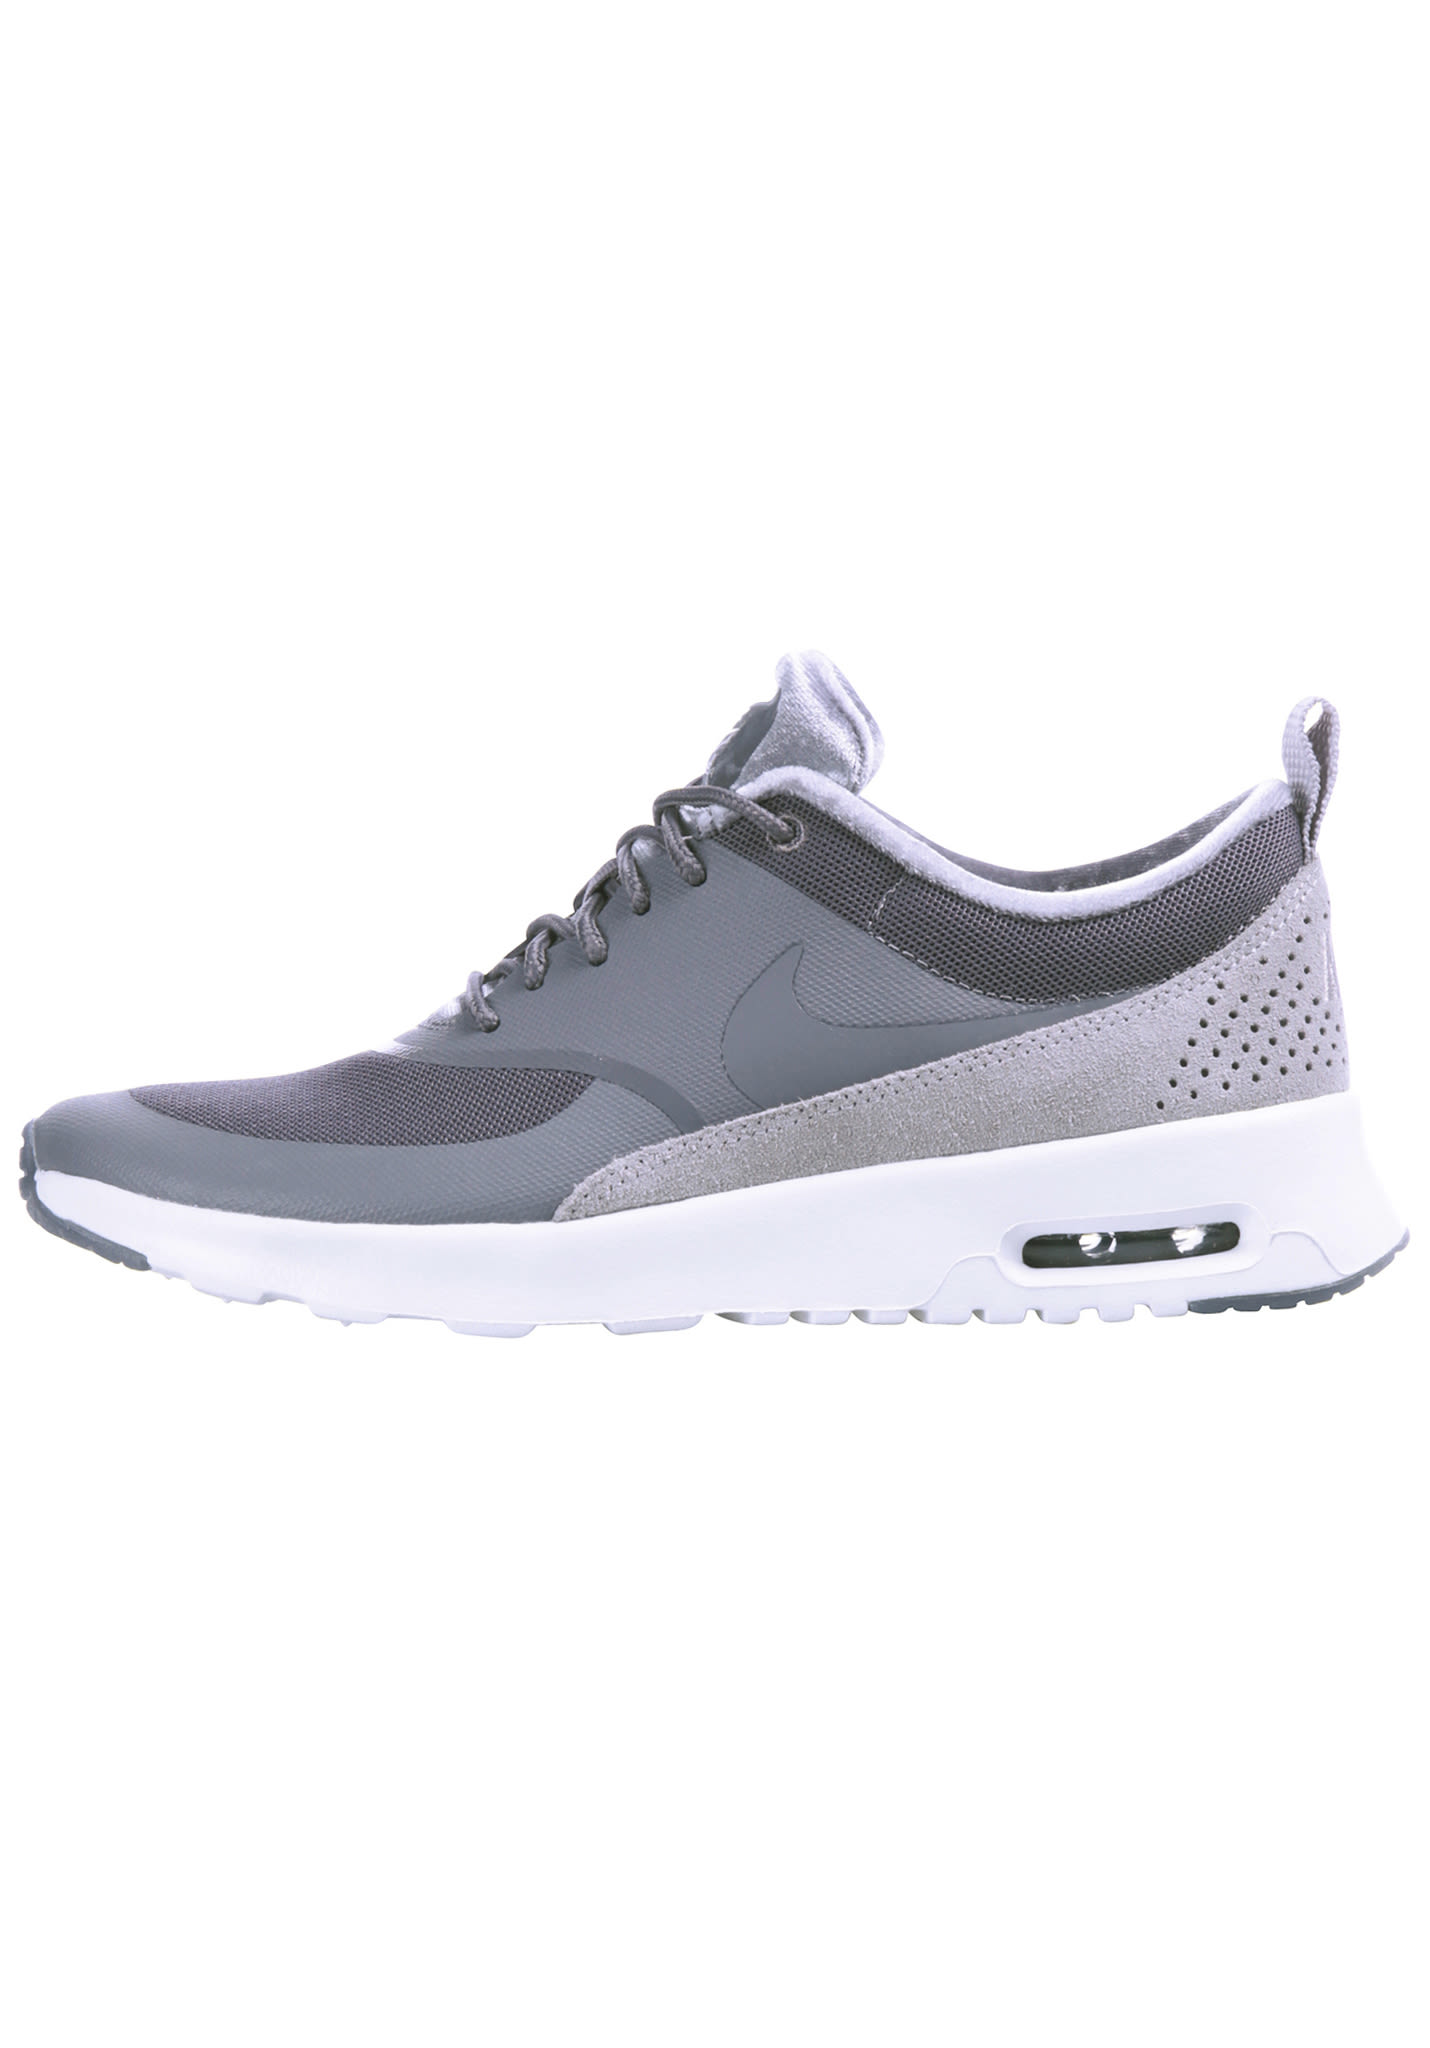 NIKE SPORTSWEAR Air Max Thea LX - Sneakers voor Dames - Grijs - Planet  Sports c79d1e567